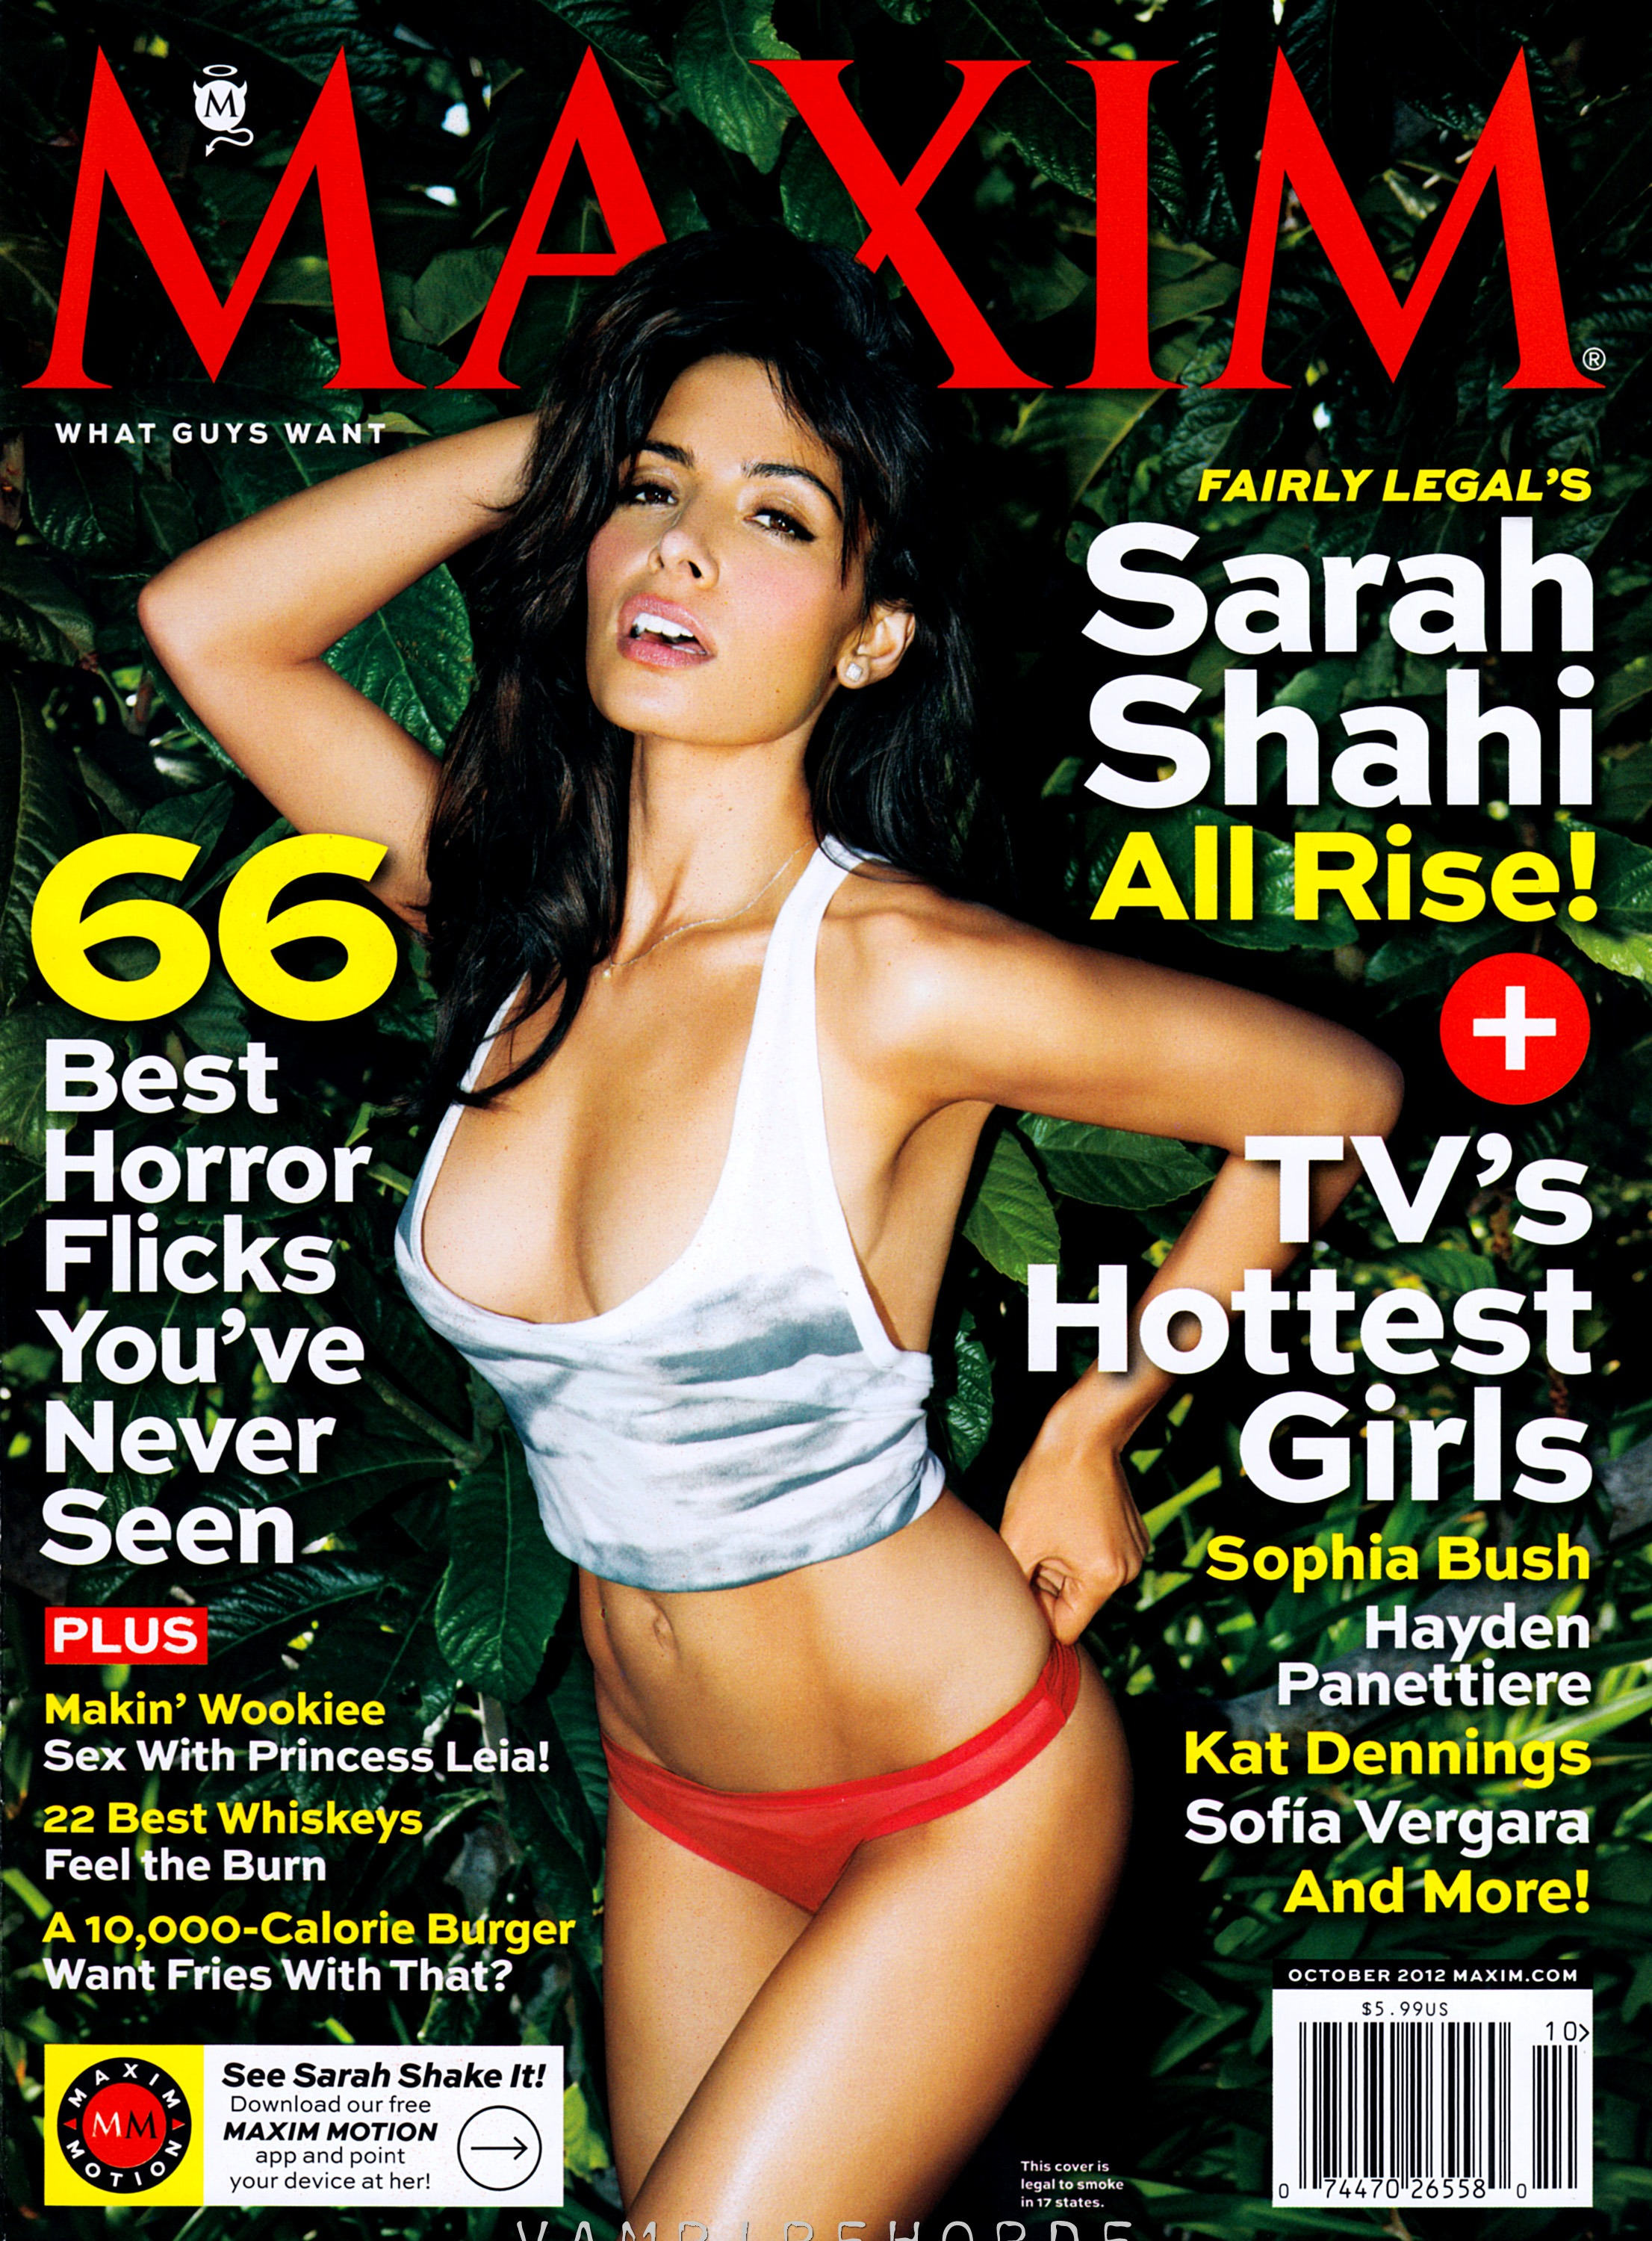 fashion_scans_remastered-sarah_shahi-maxim_usa-october_2012-scanned_by_vampirehorde-hq-1.jpg